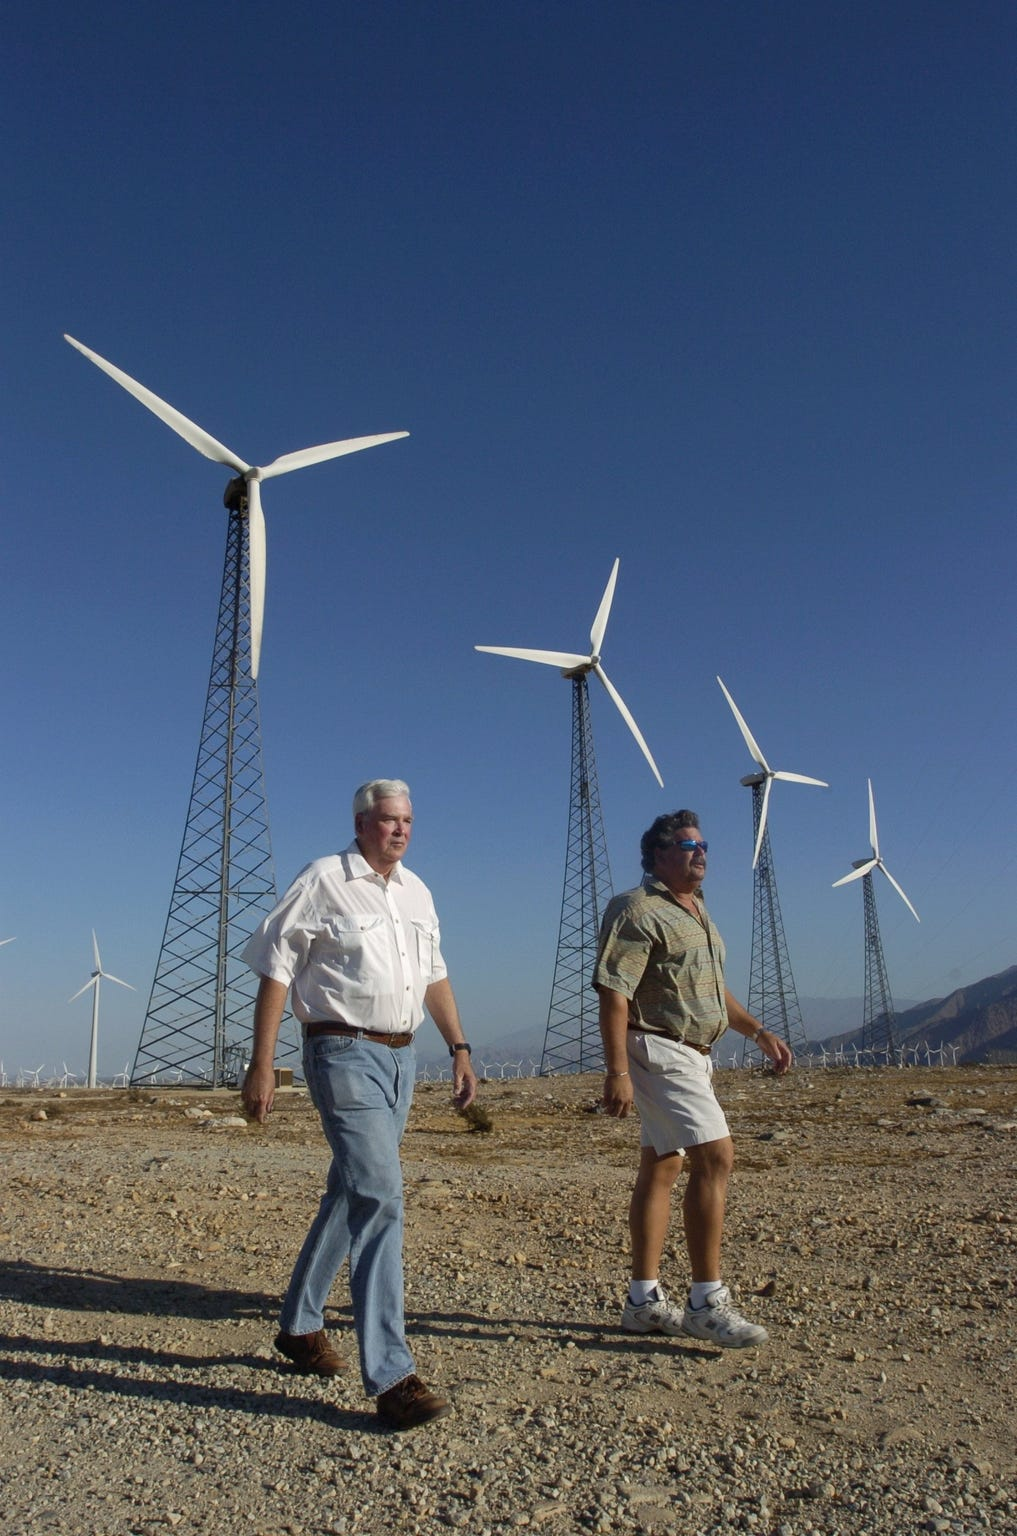 Palm Springs Iconic Wind Farms Could Change Dramatically